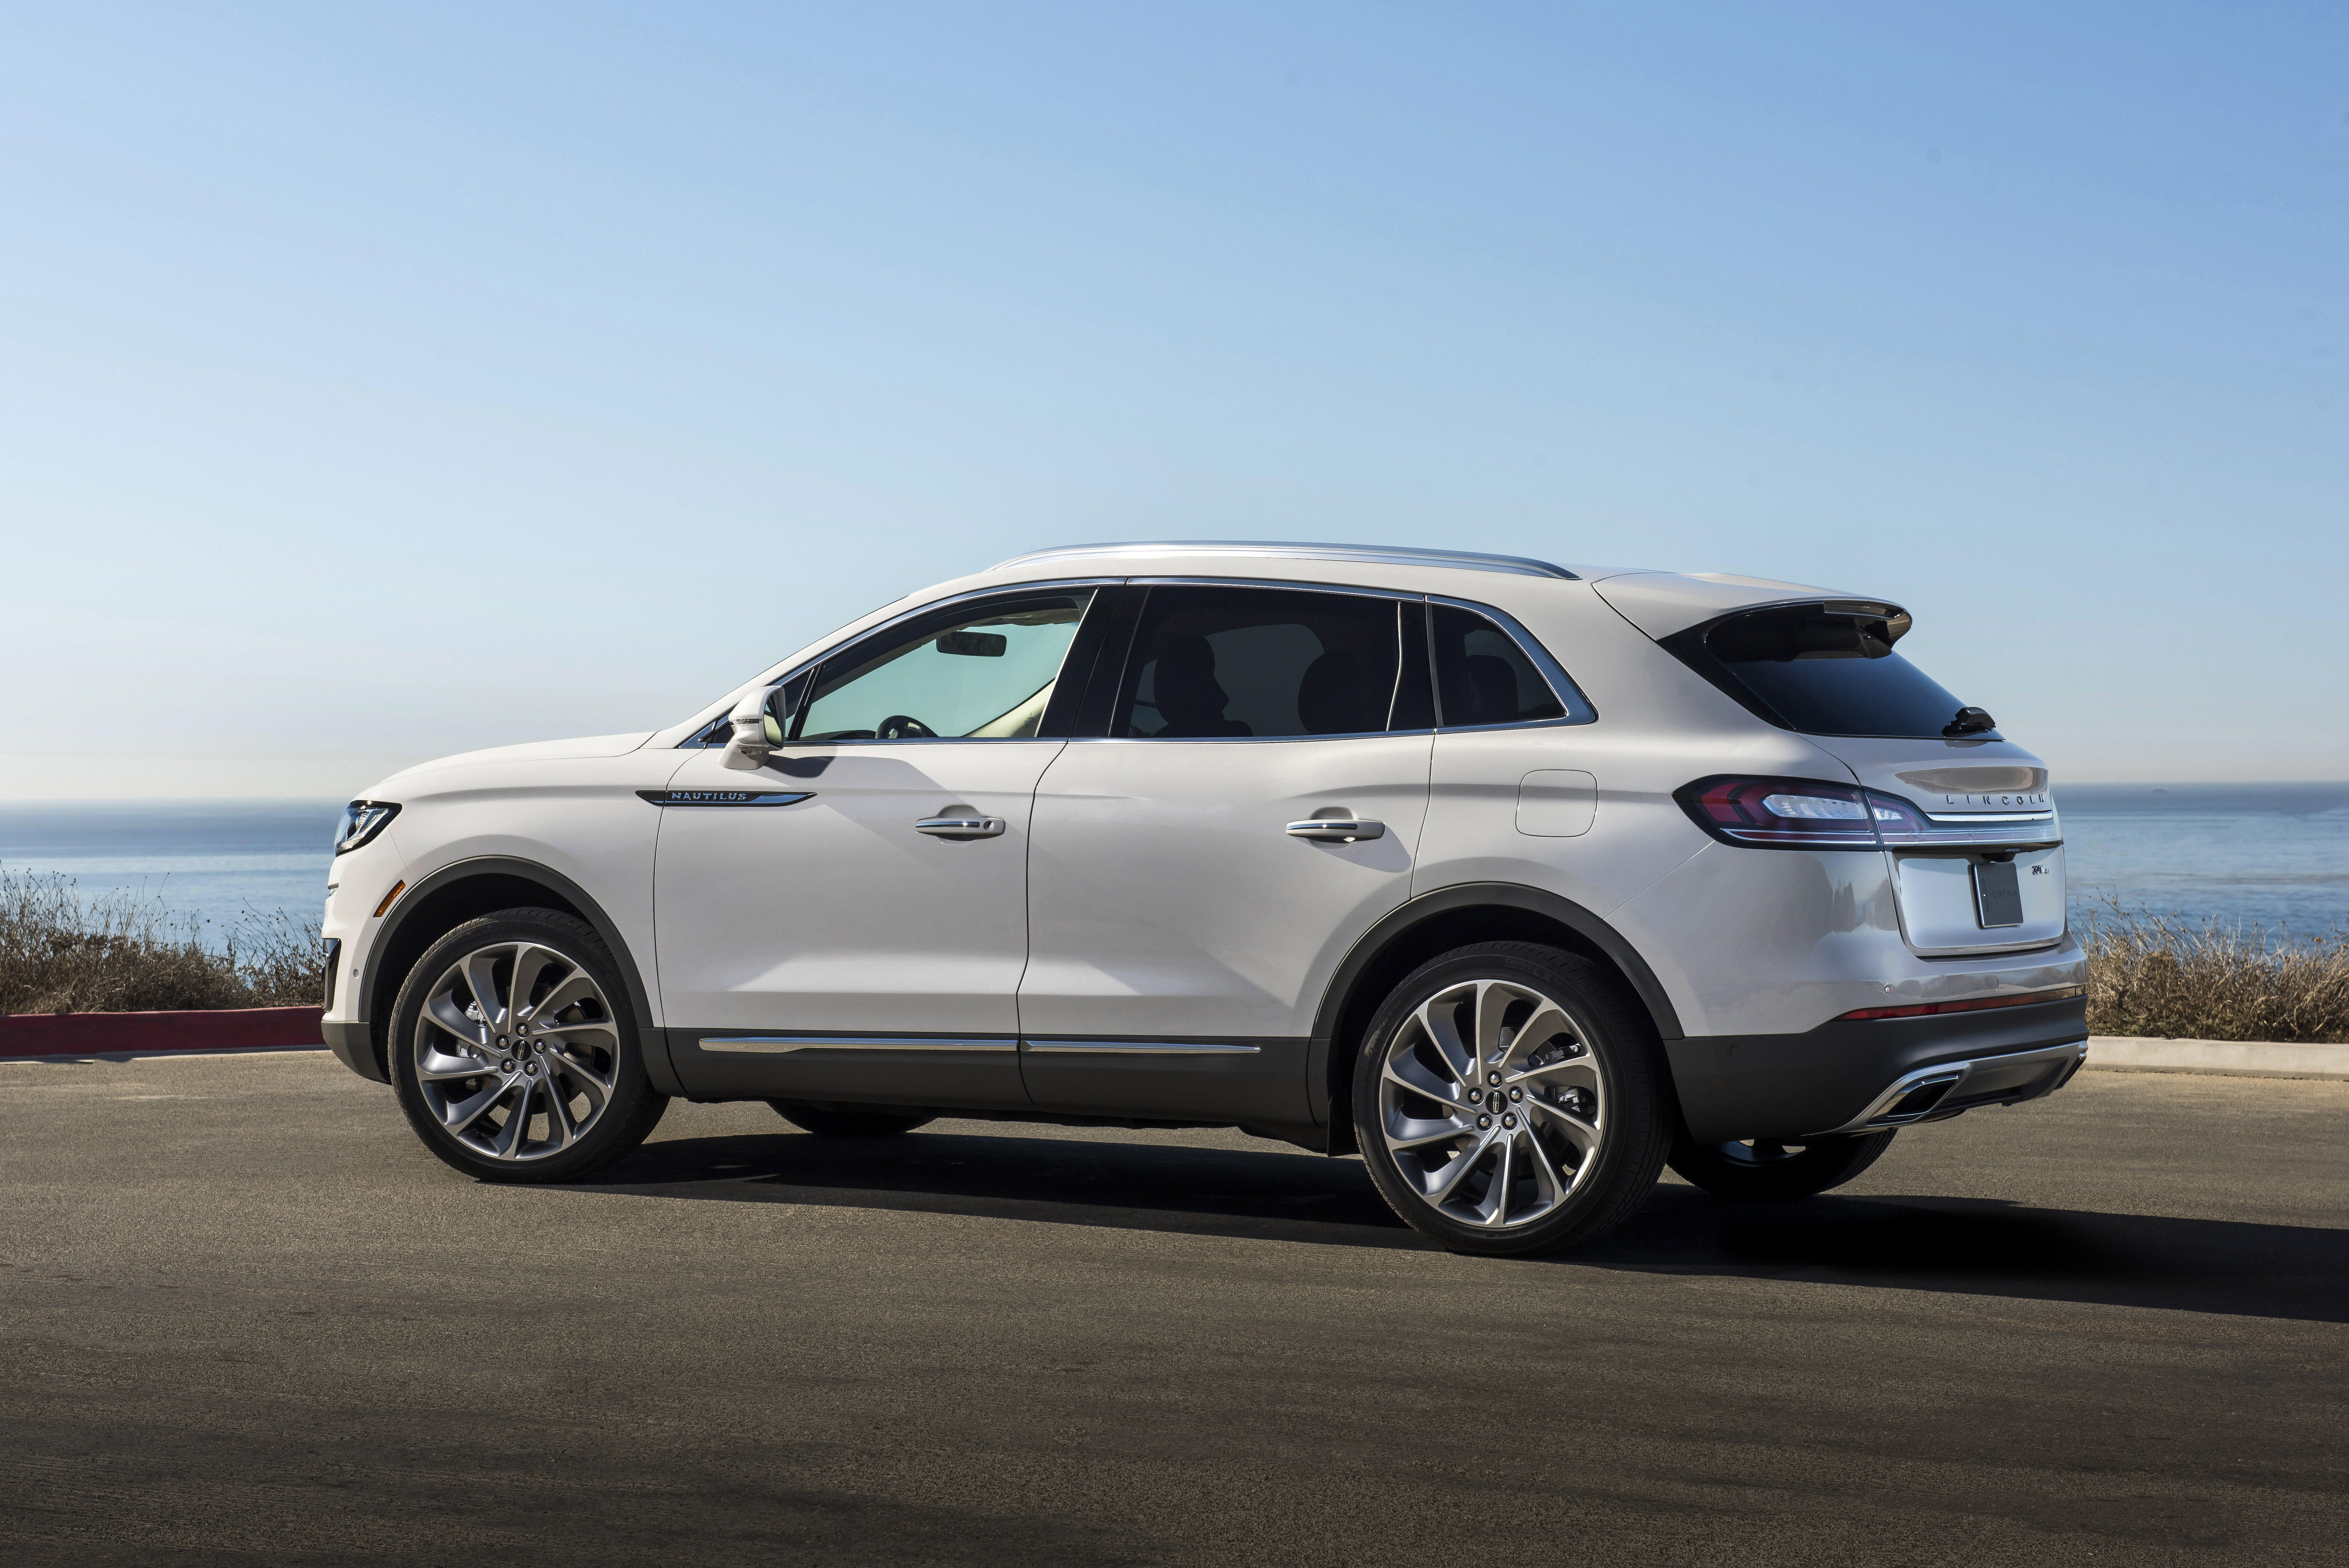 59 All New 2019 Lincoln Mkx At Beijing Motor Show Redesign and Review